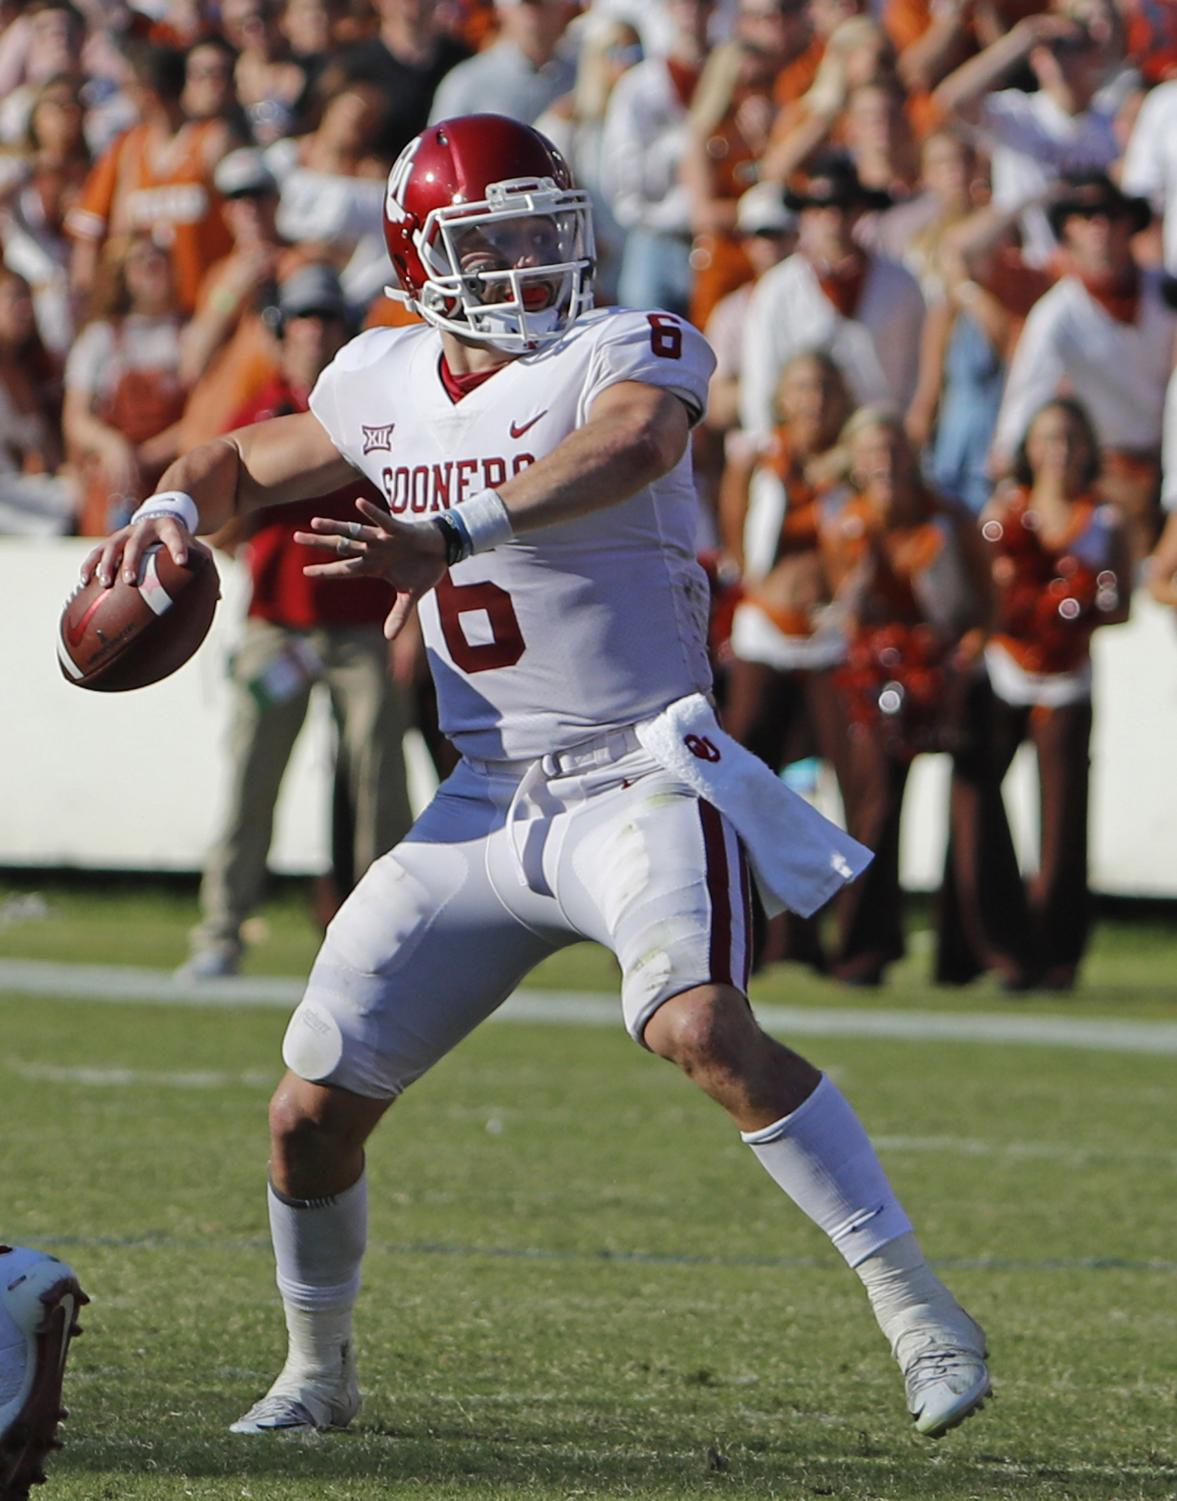 Baker Mayfield steps into a pass against Texas in the Red River Rivalry.